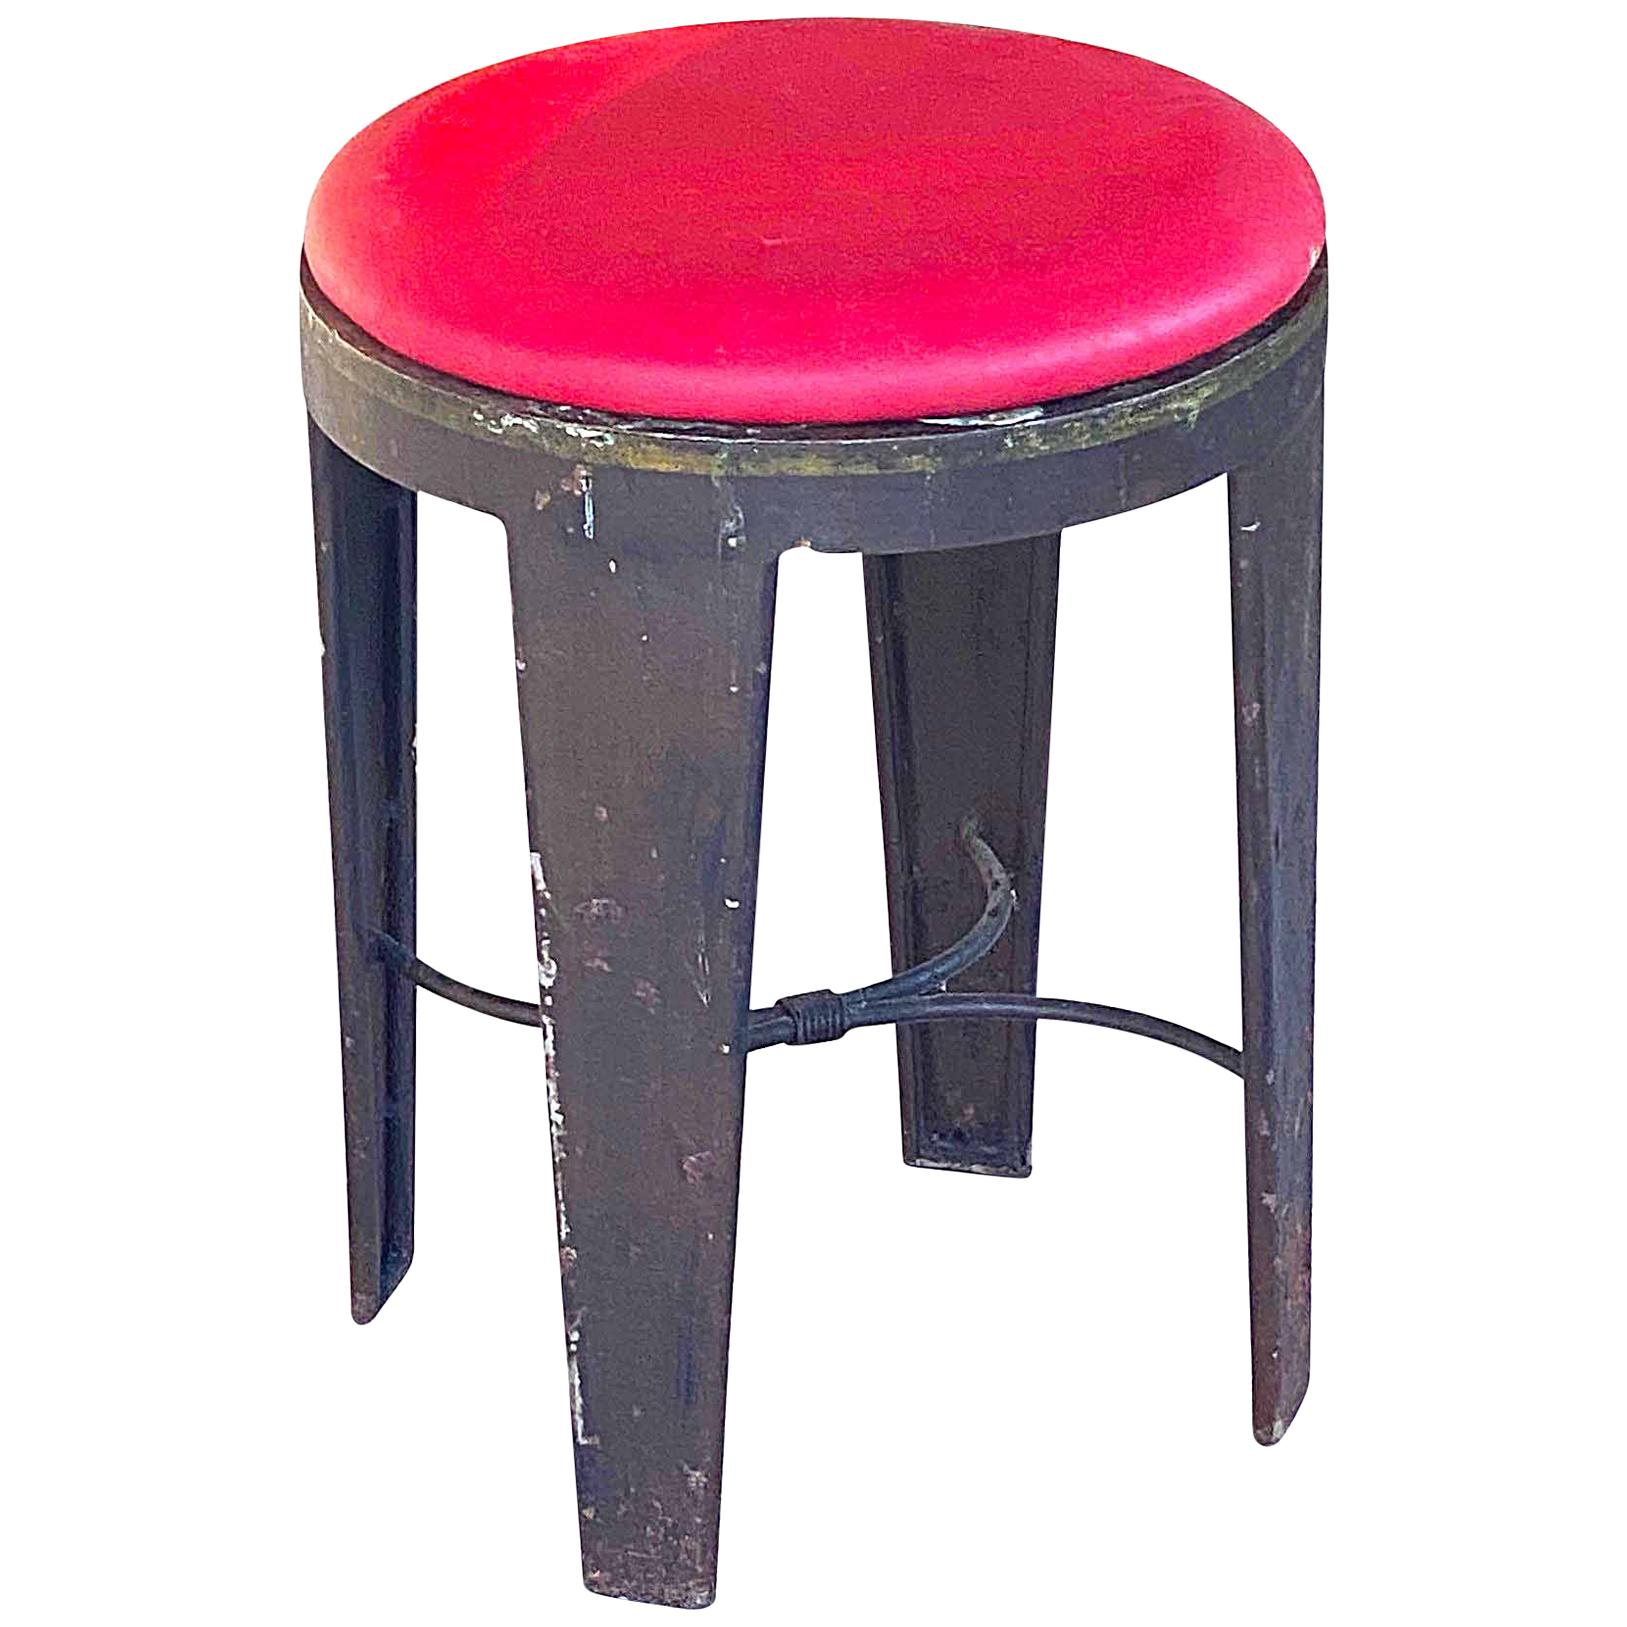 Industrial Stool, in Iron, with Red Faux Leather, Loft Style, France, 1950s